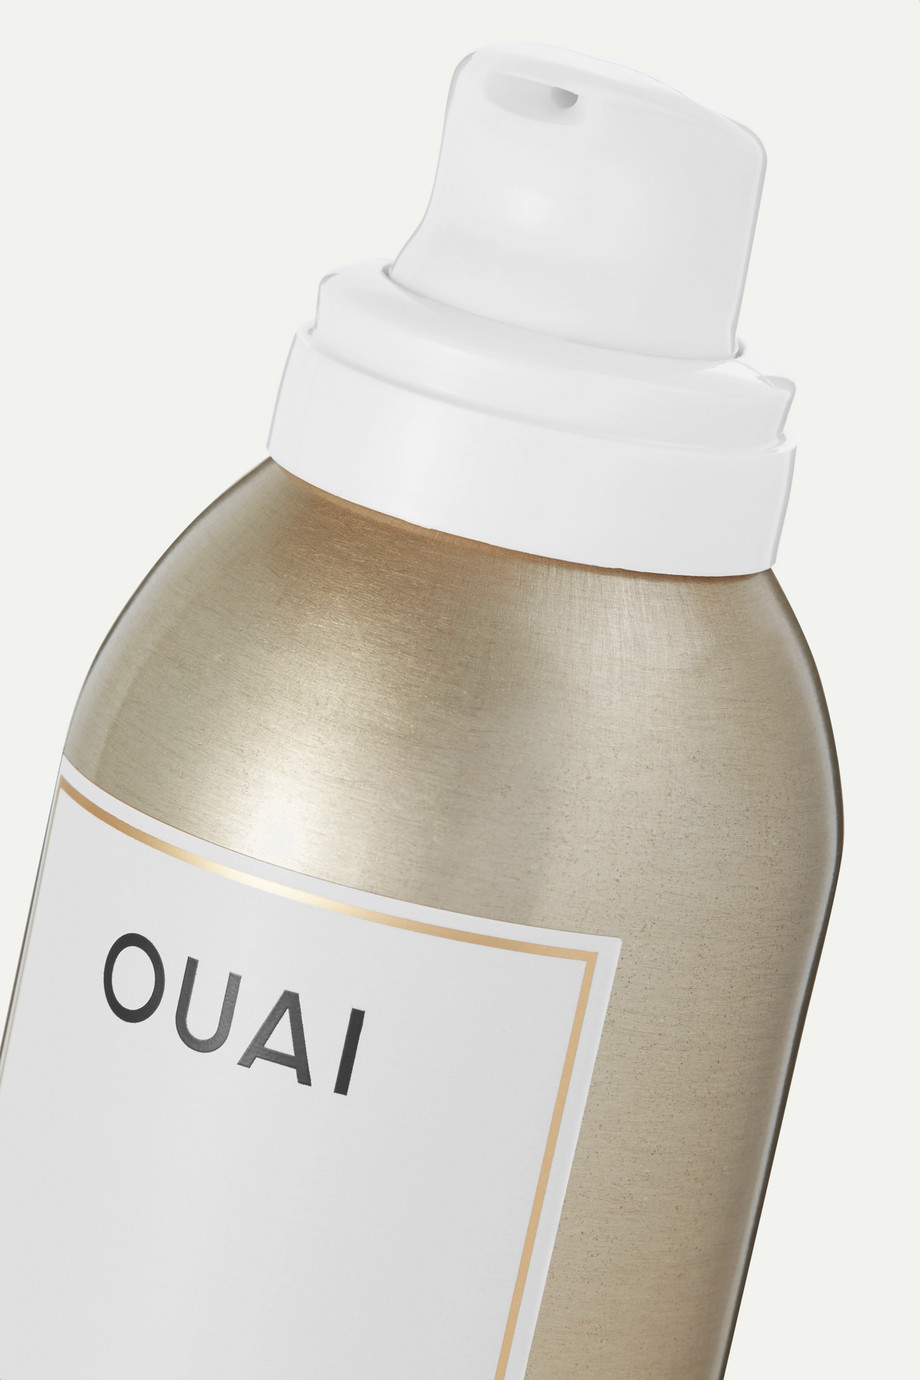 OUAI Haircare After Sun Body Soother, 114g